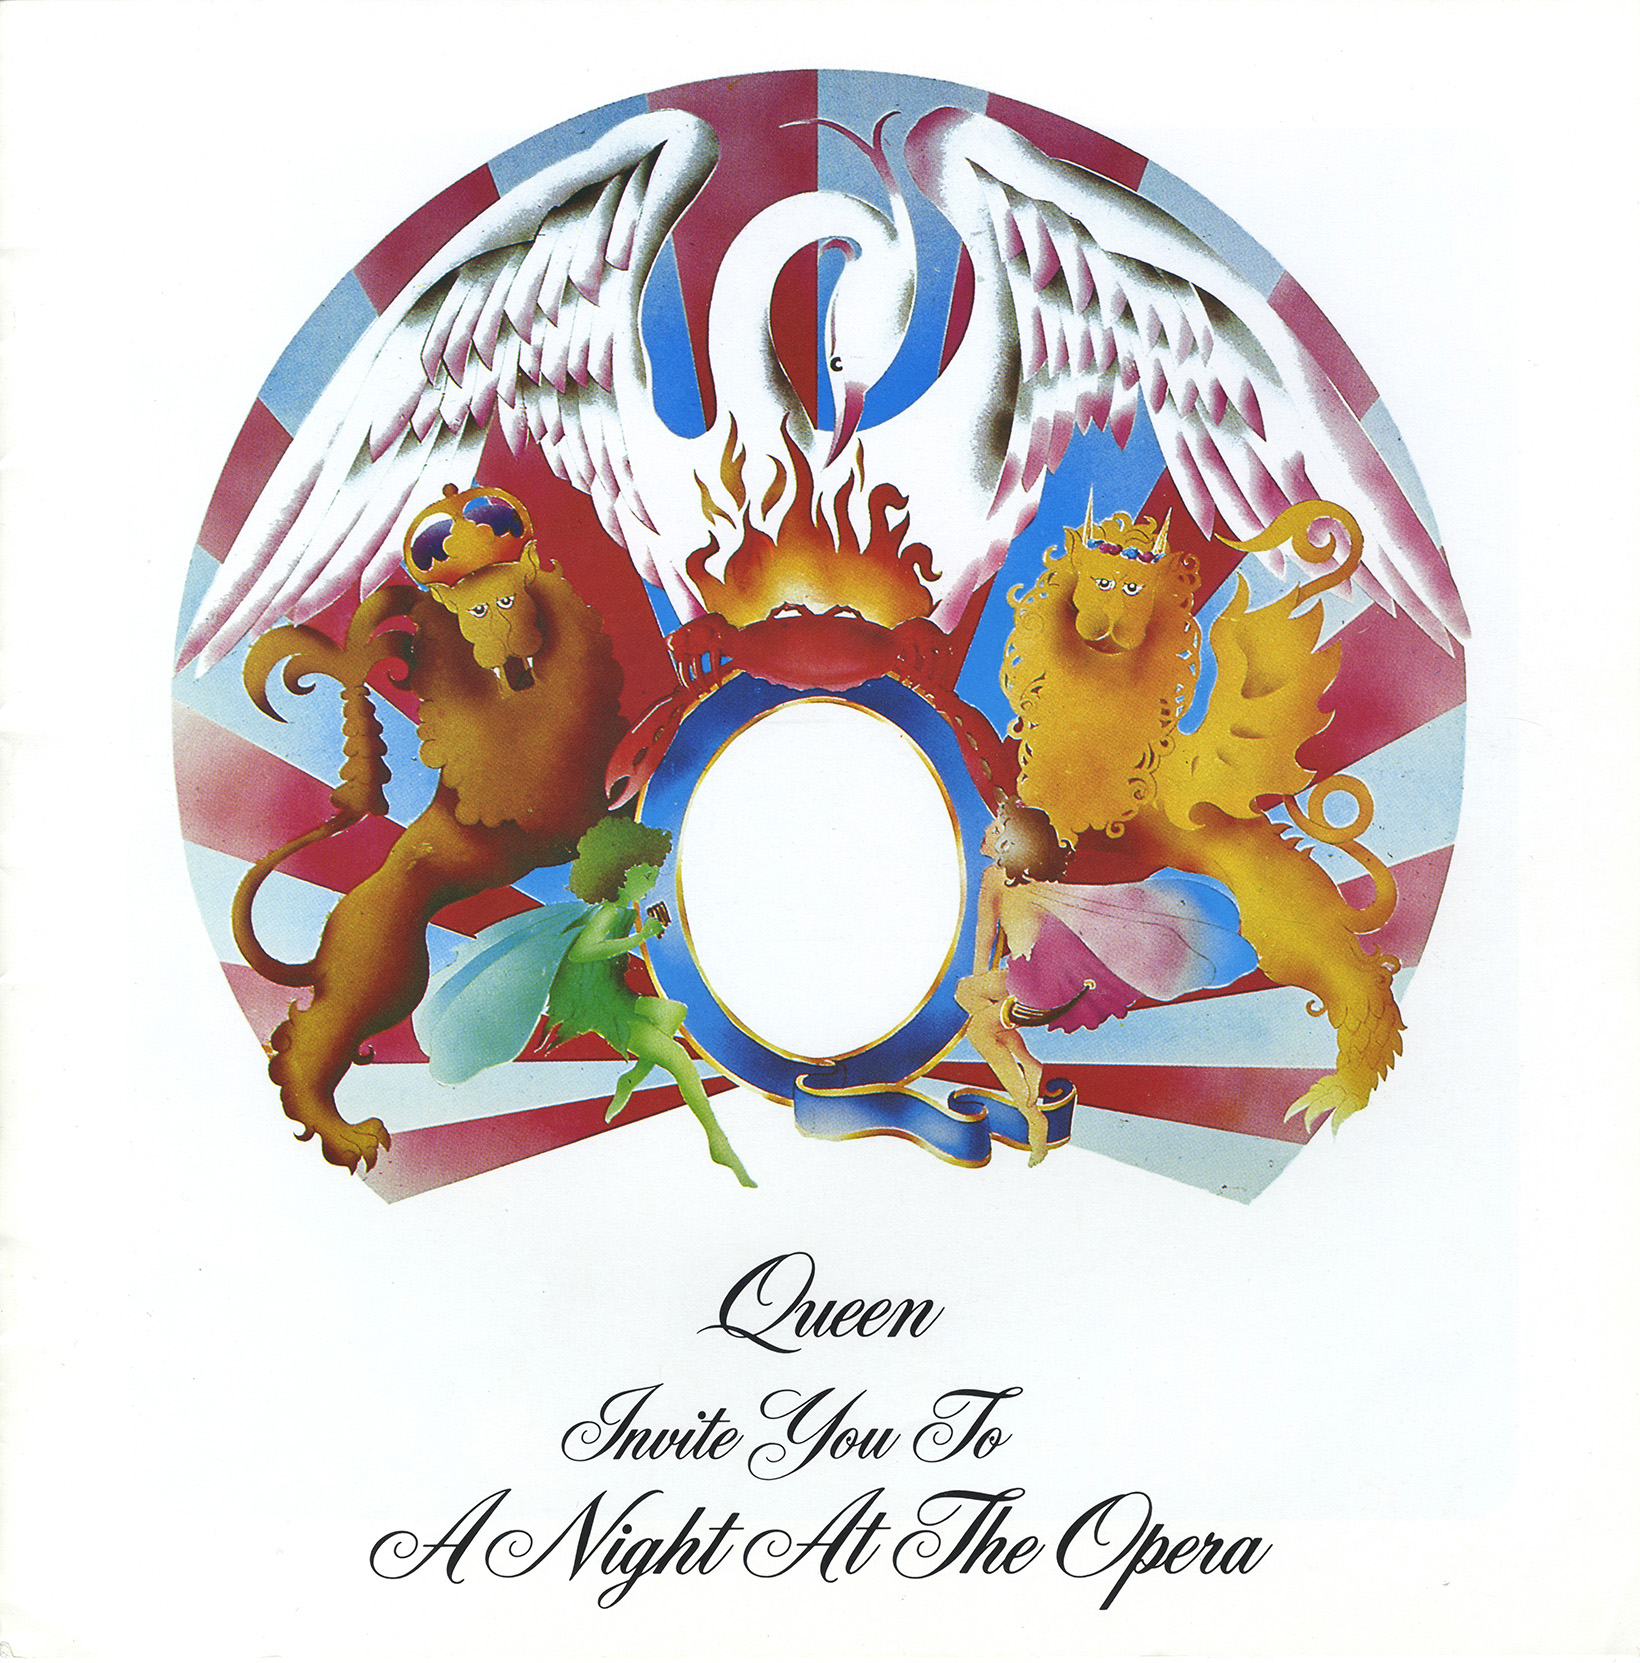 A Night At The Opera tour program (USA, Australia)